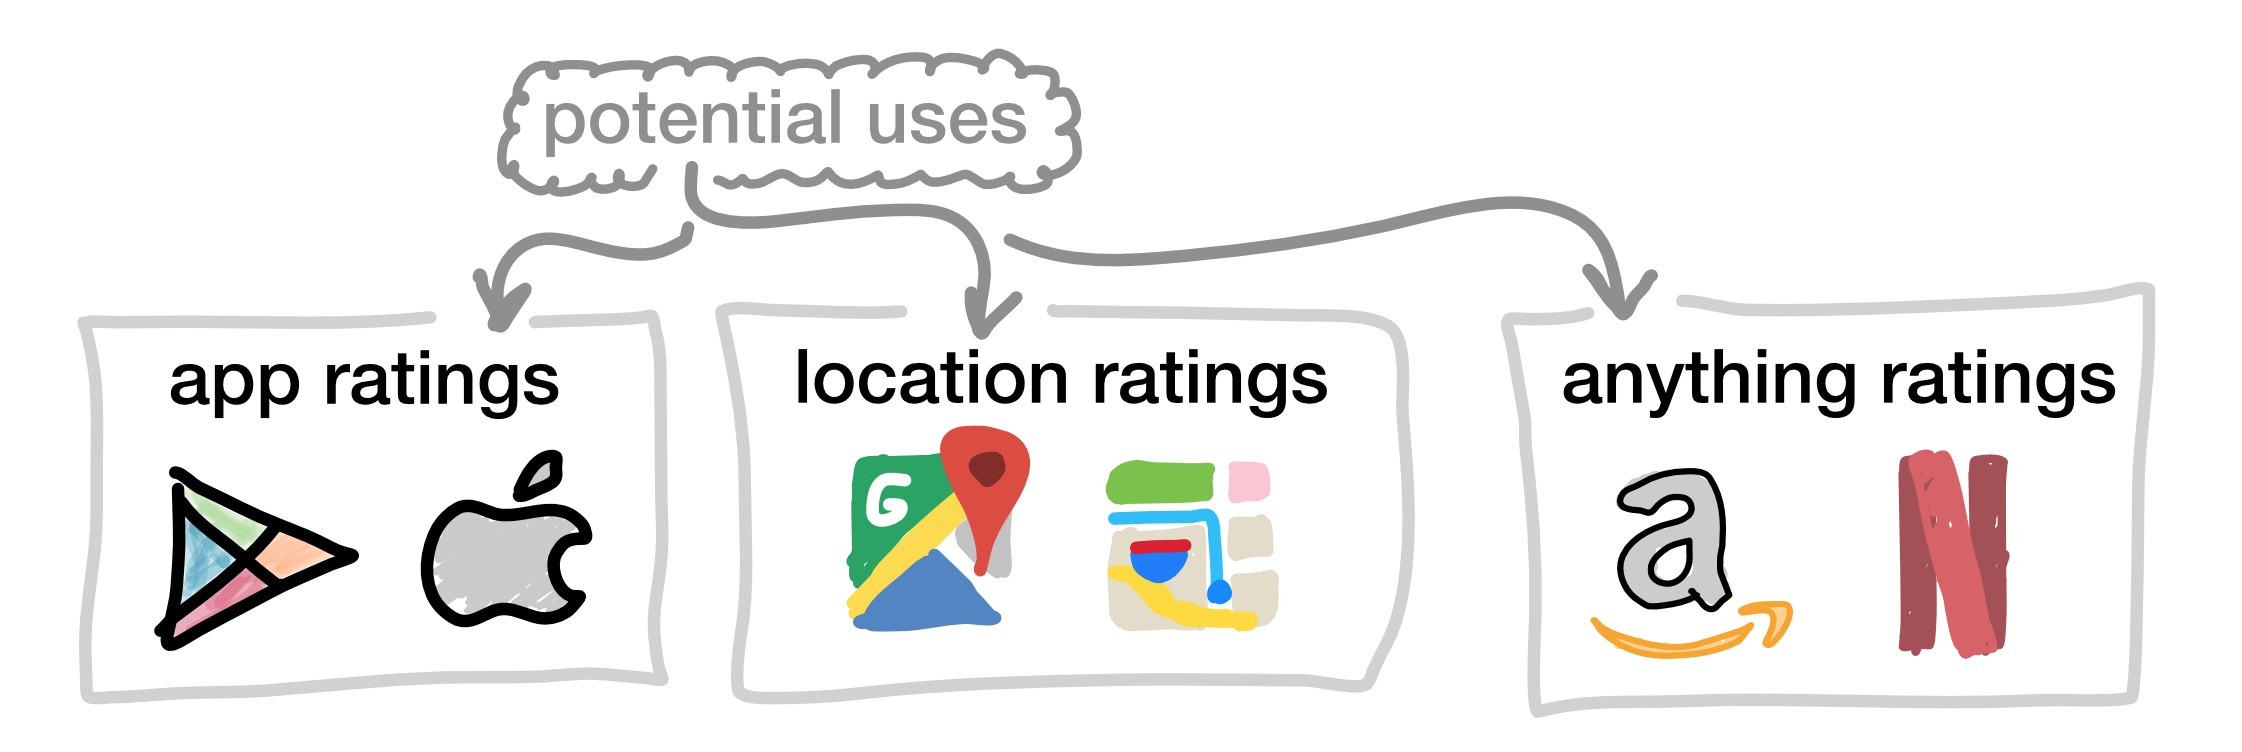 Suggested applications from left to right: Google Play Store, Apple App Store, Google Maps, Apple Maps, Amazon, Netflix.